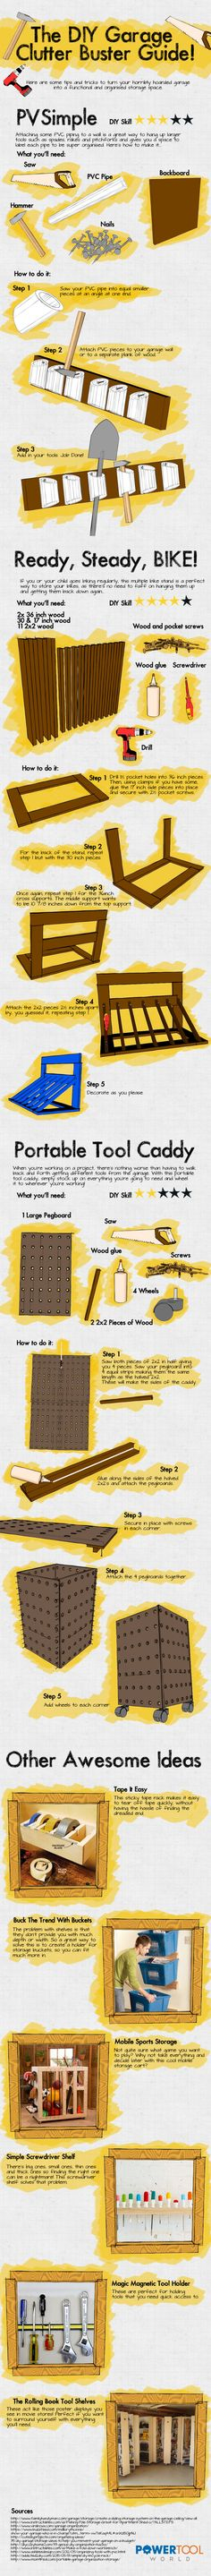 The DIY Garage Clutter Buster Guide #Infographic #DoItYourself